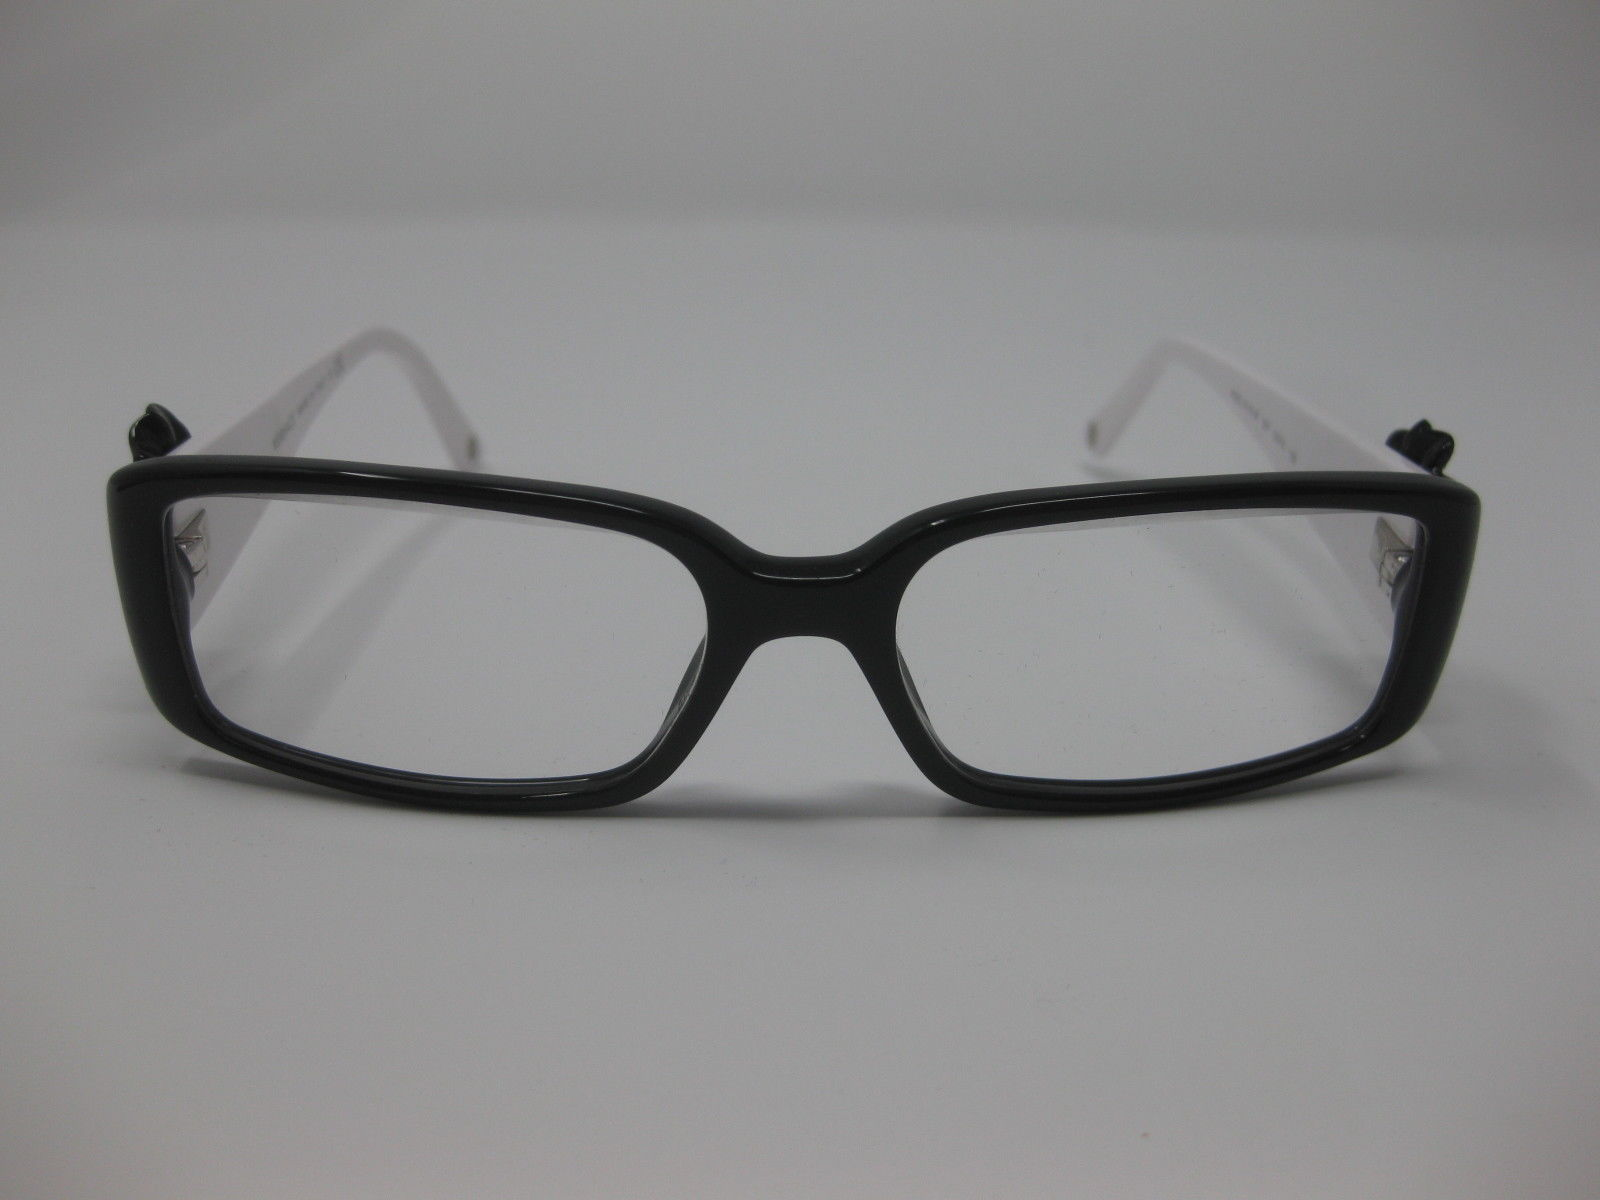 72236a5cad06 Versace 3115-B Eyeglasses Frames Crystal Flower Demo Lens 52 15 135 Black  White